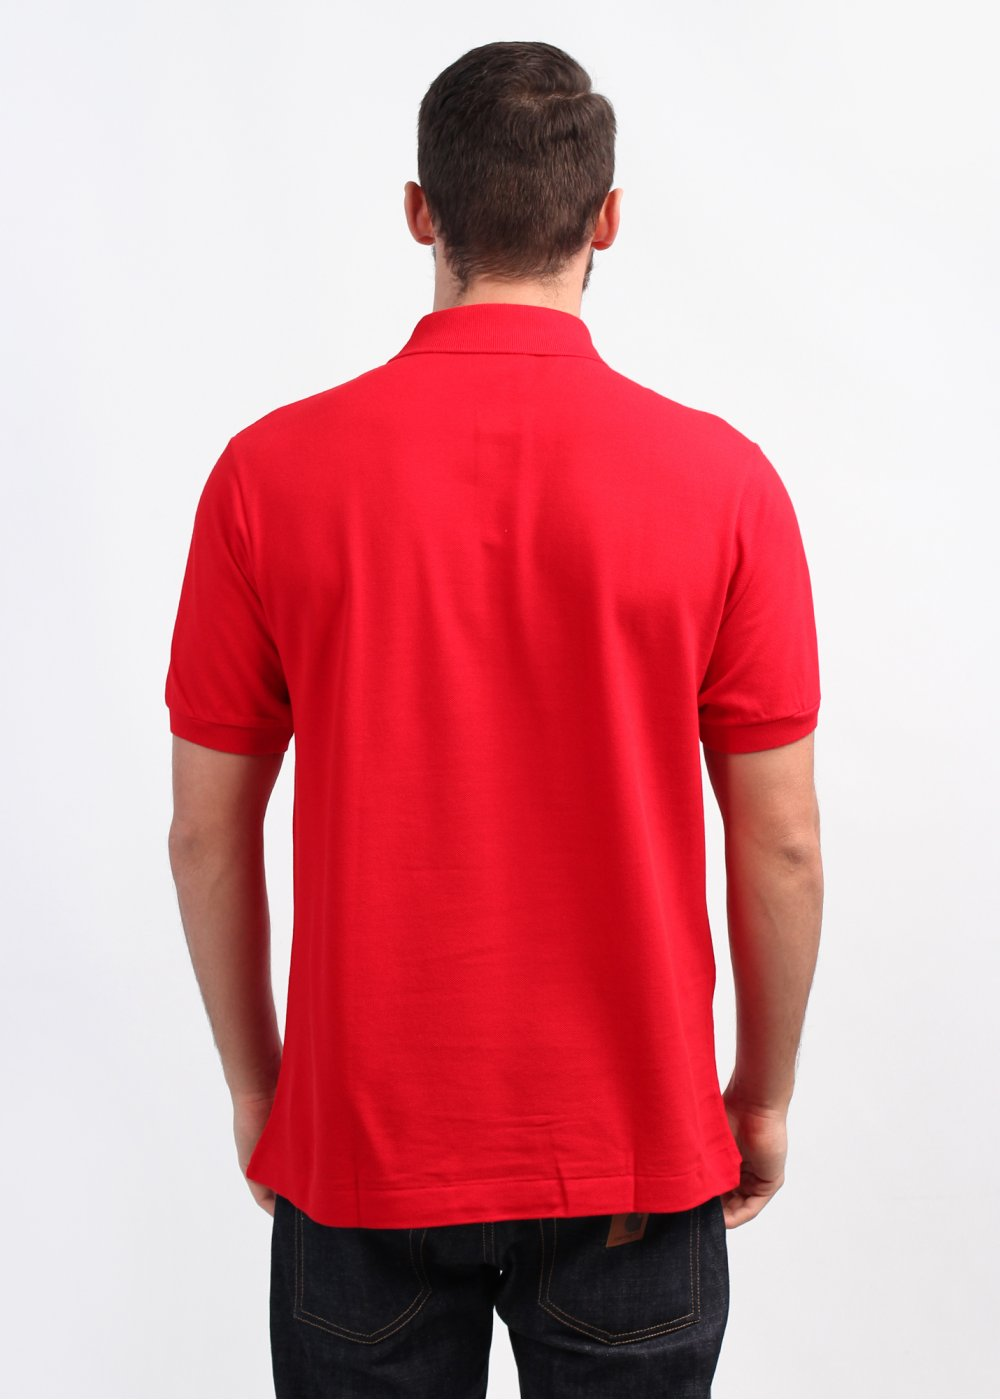 Lacoste best polo shirt bright red for Lacoste poloshirt weiay